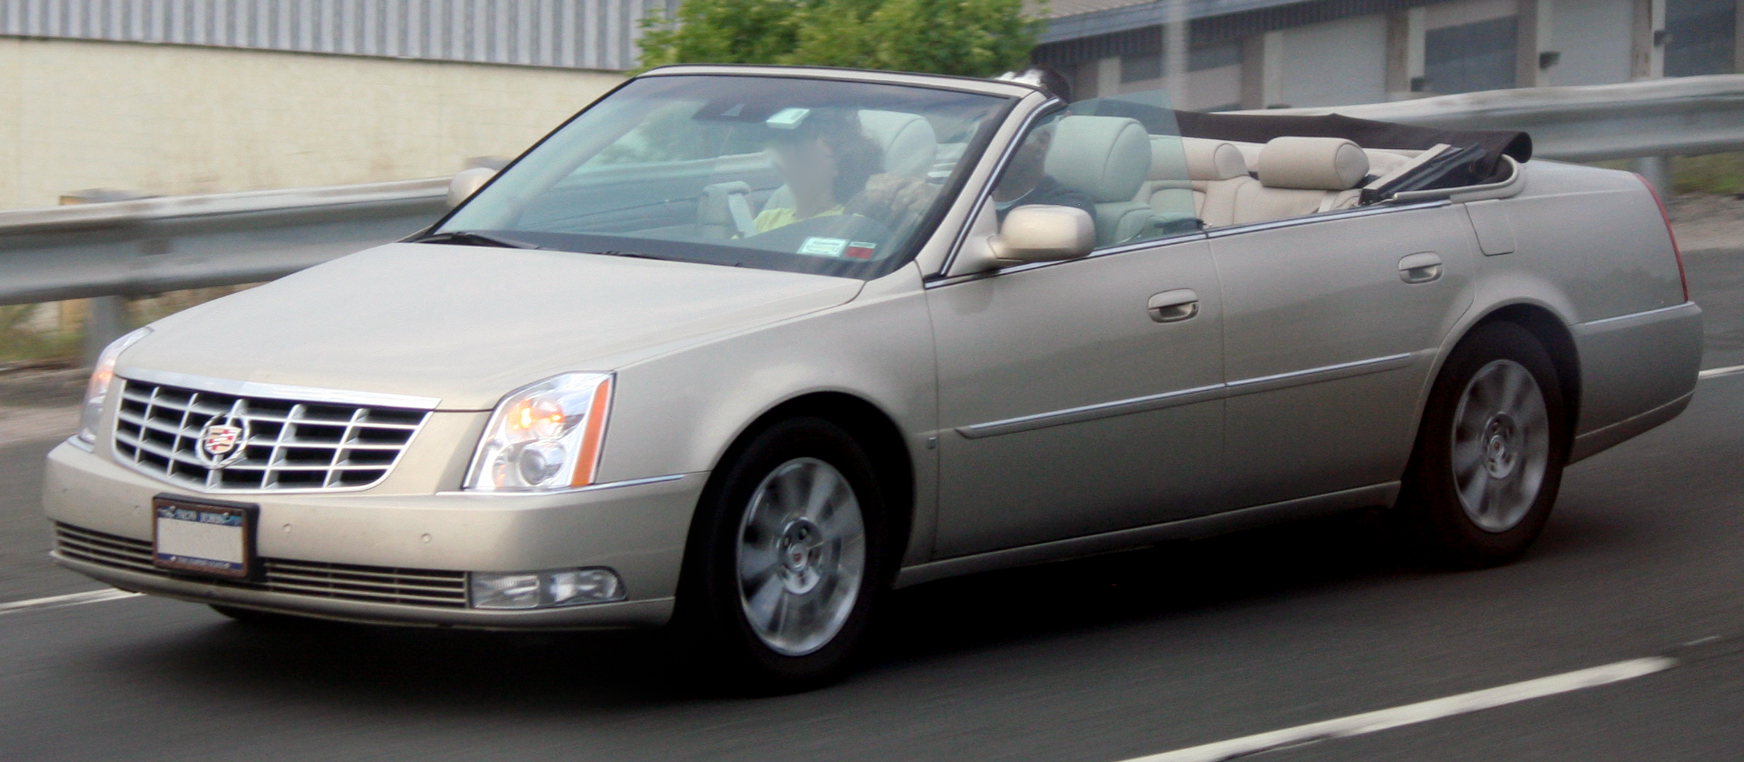 pic com cadillac photos dts model new carsbase pics photo with photogallery pictures